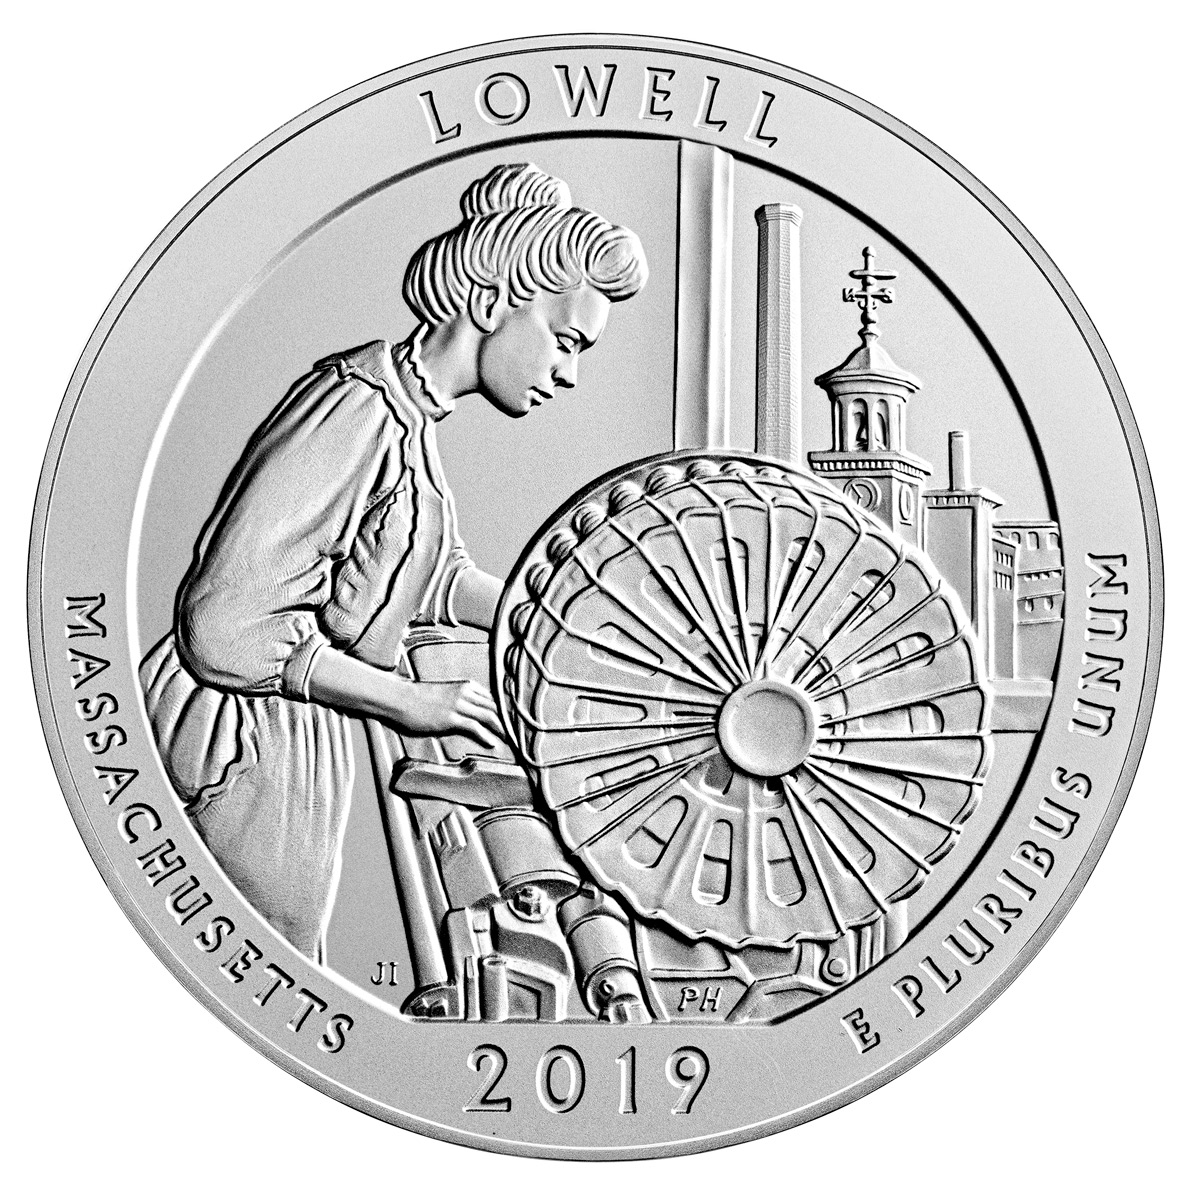 2019-P Lowell National Historic Park 5 oz. Silver America the Beautiful Specimen Coin OGP